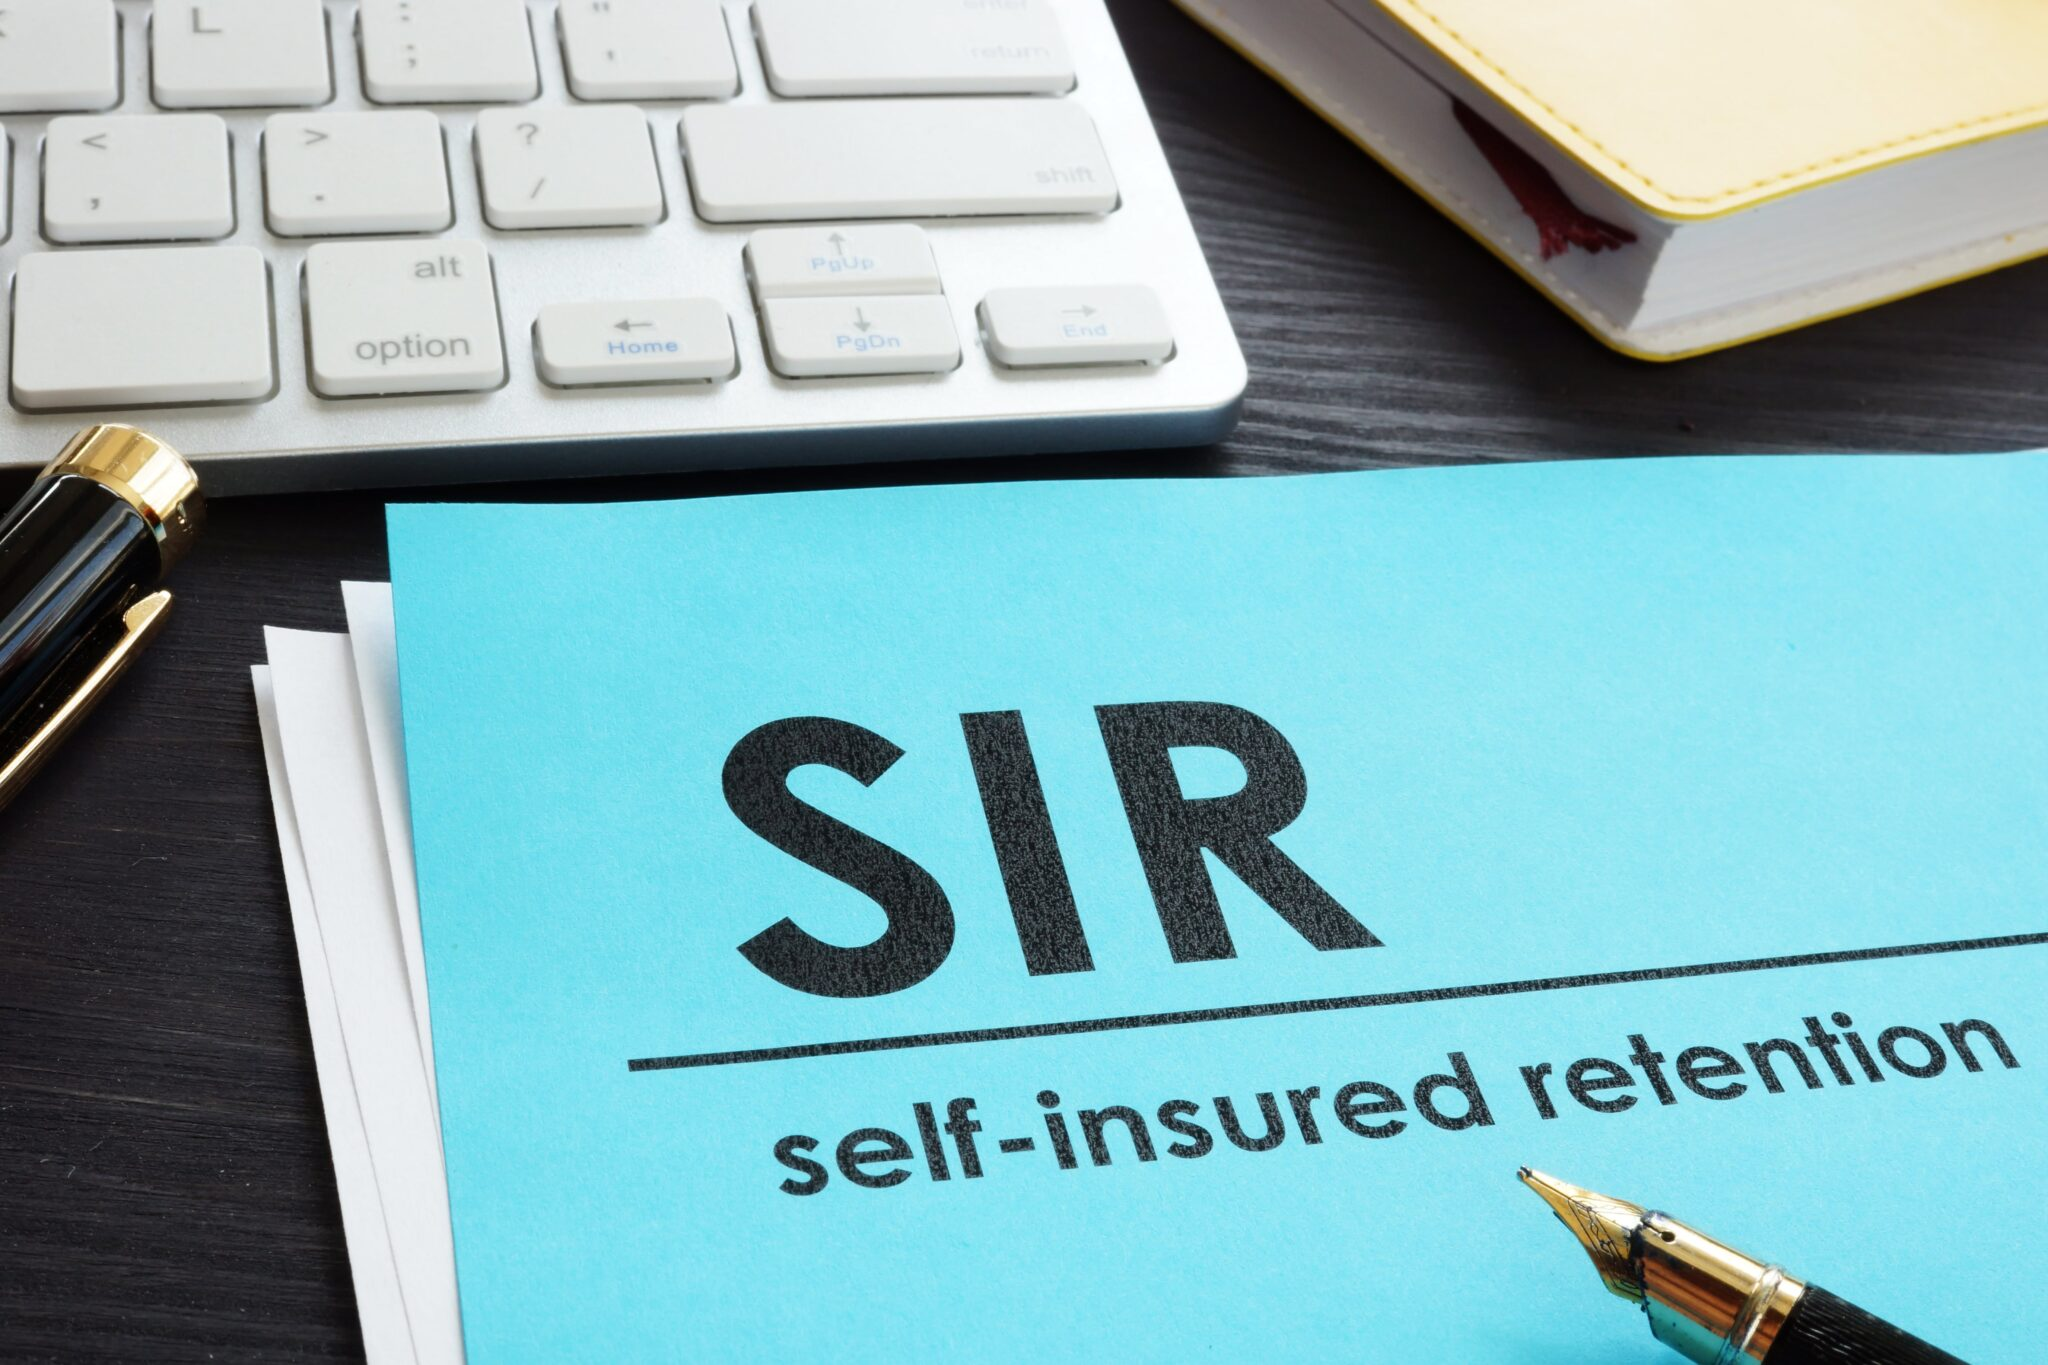 Self-Insured Retention (SIR) Policy – Is it worth the risk?